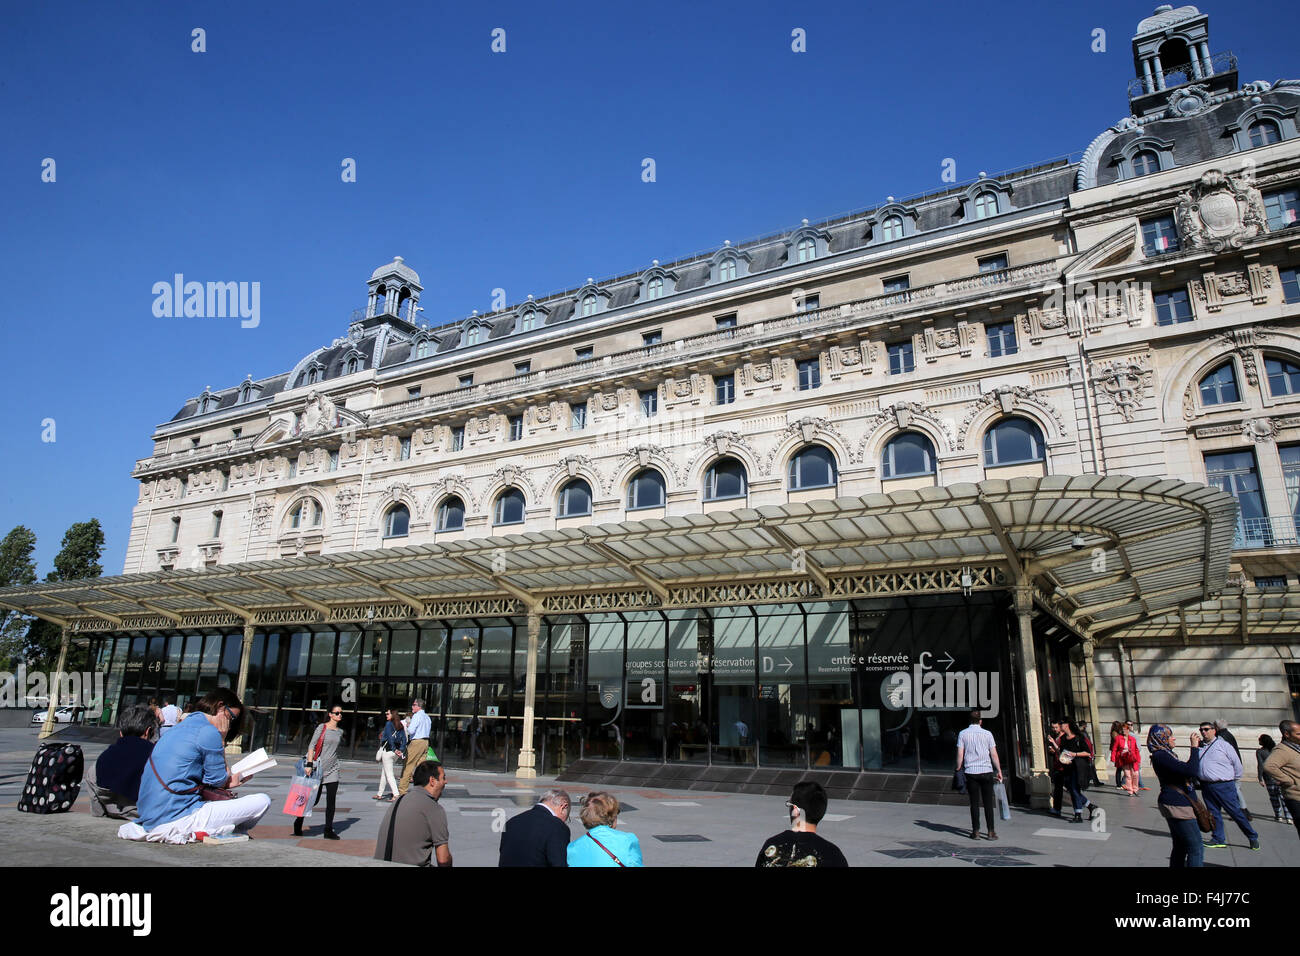 Musee d'Orsay, Paris, France, Europe - Stock Image